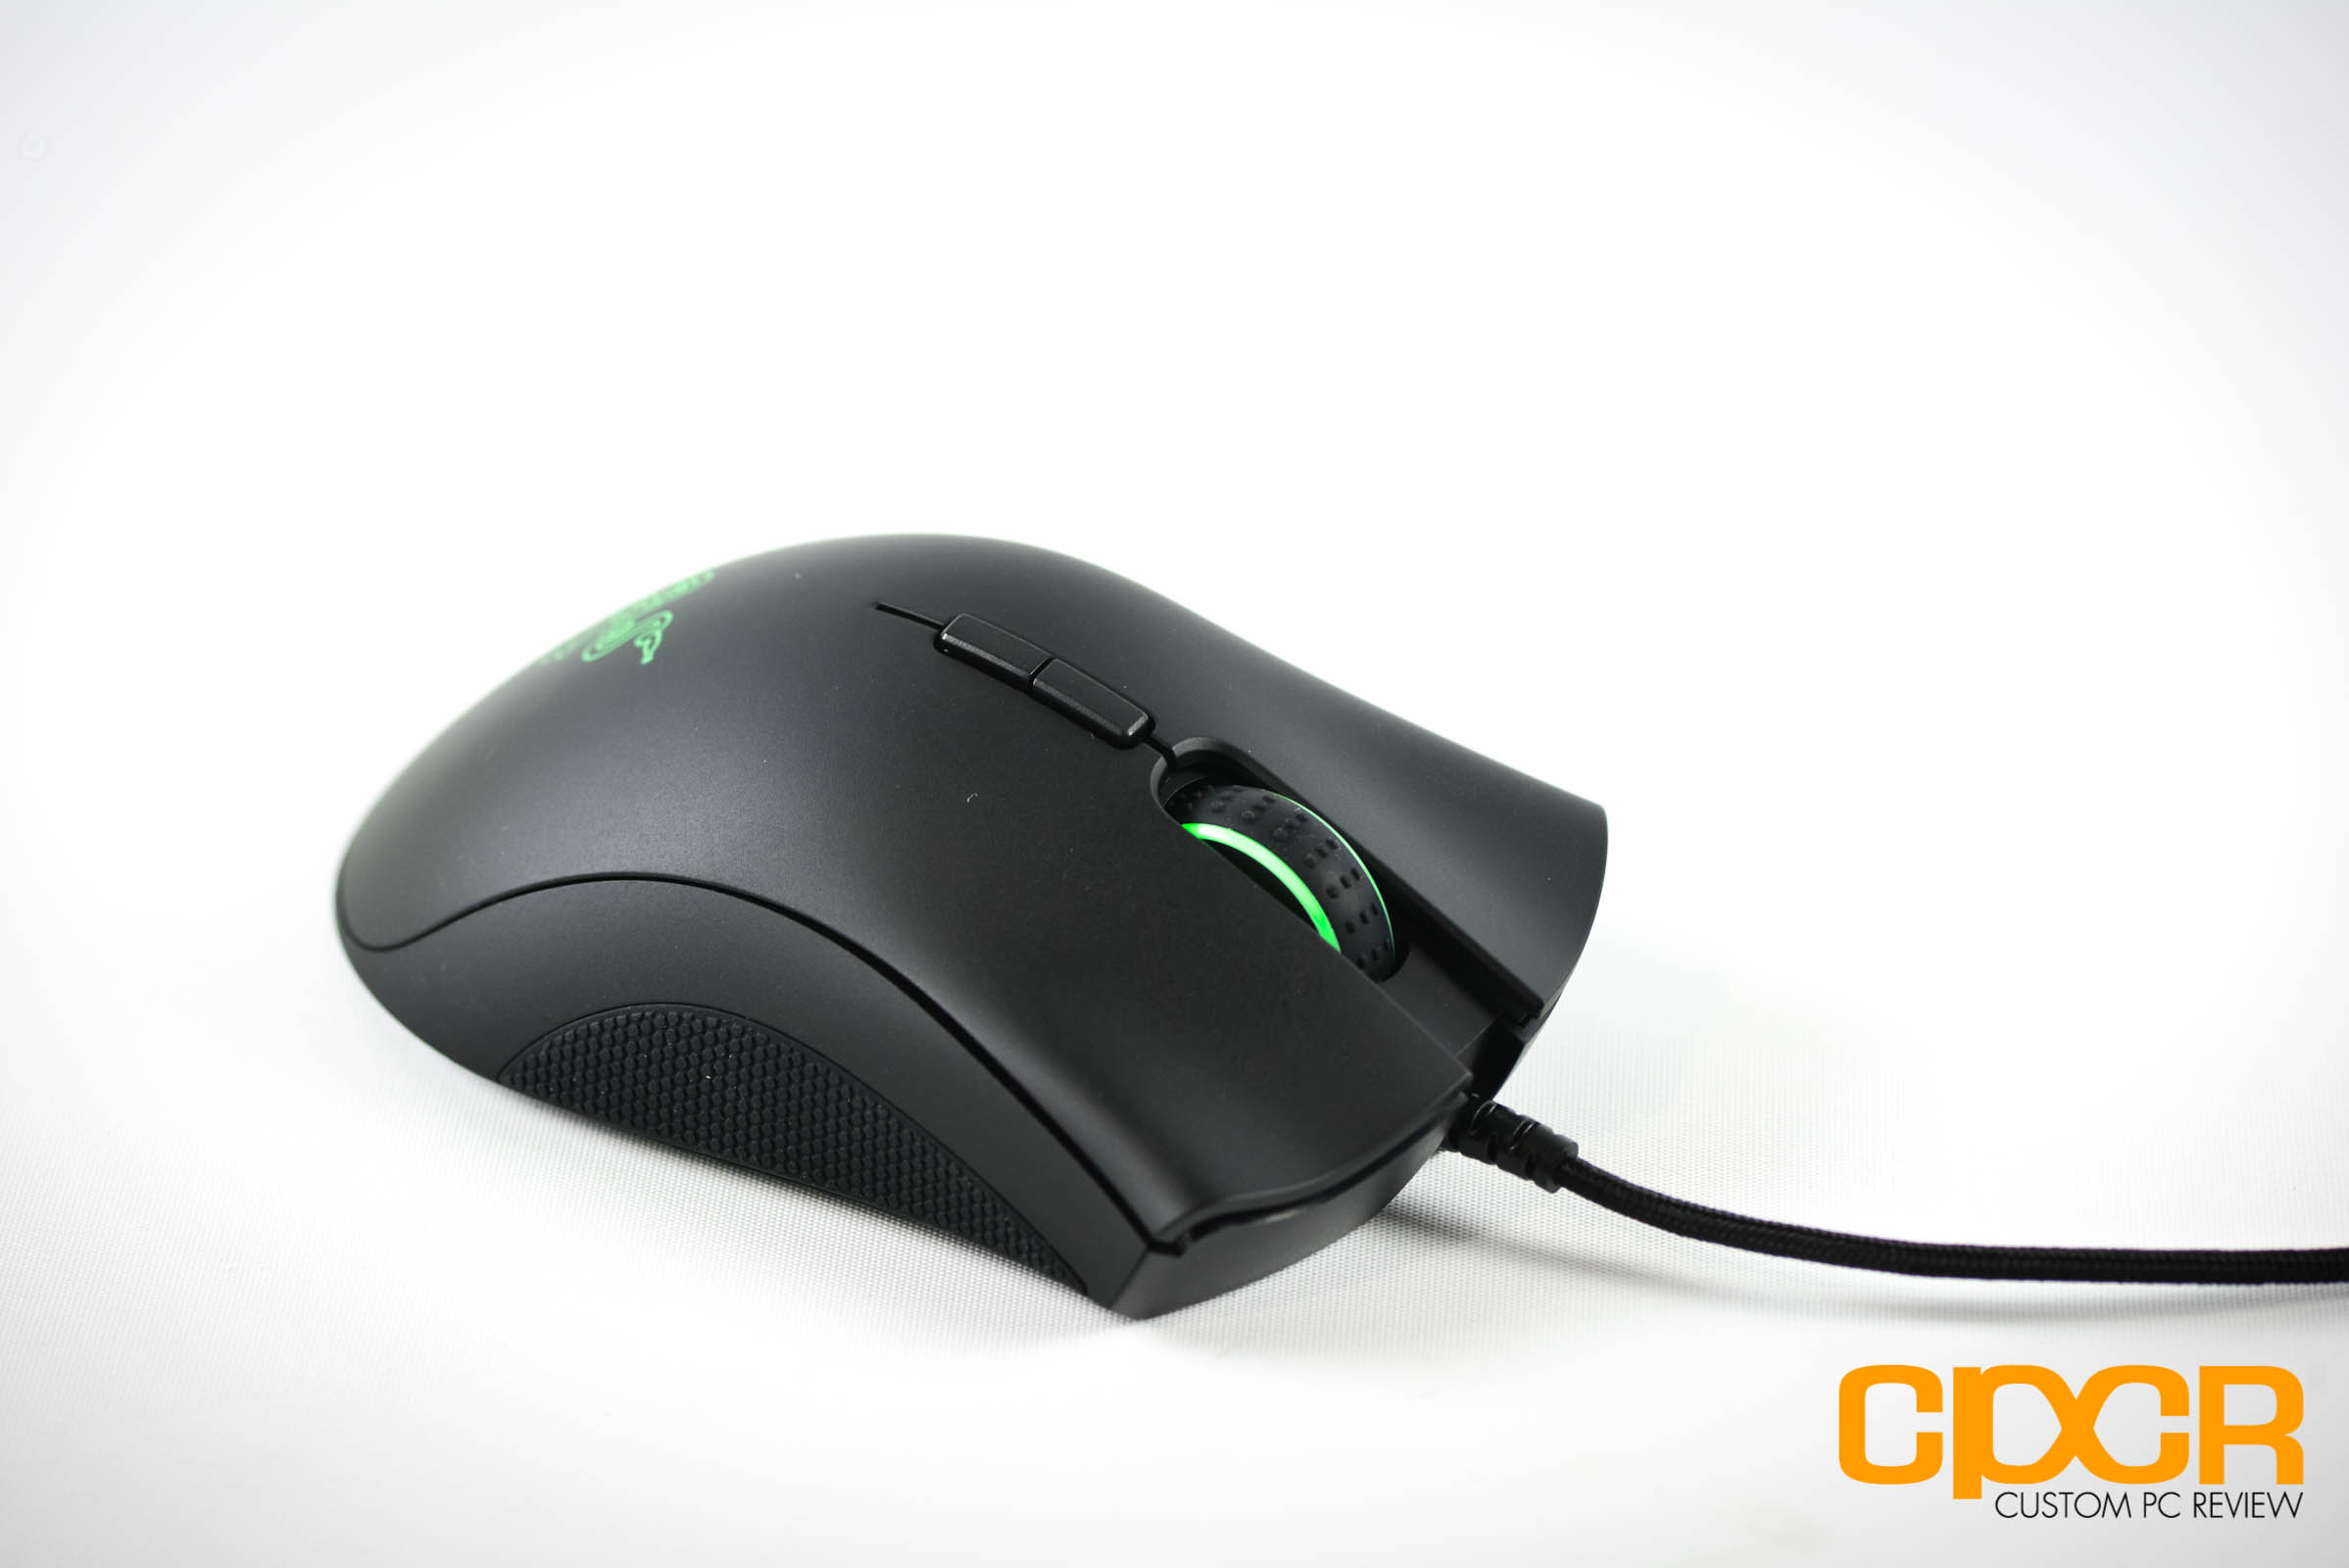 f611b80bf9a razer-deathadder-elite-gaming-mouse-custom-pc-review-